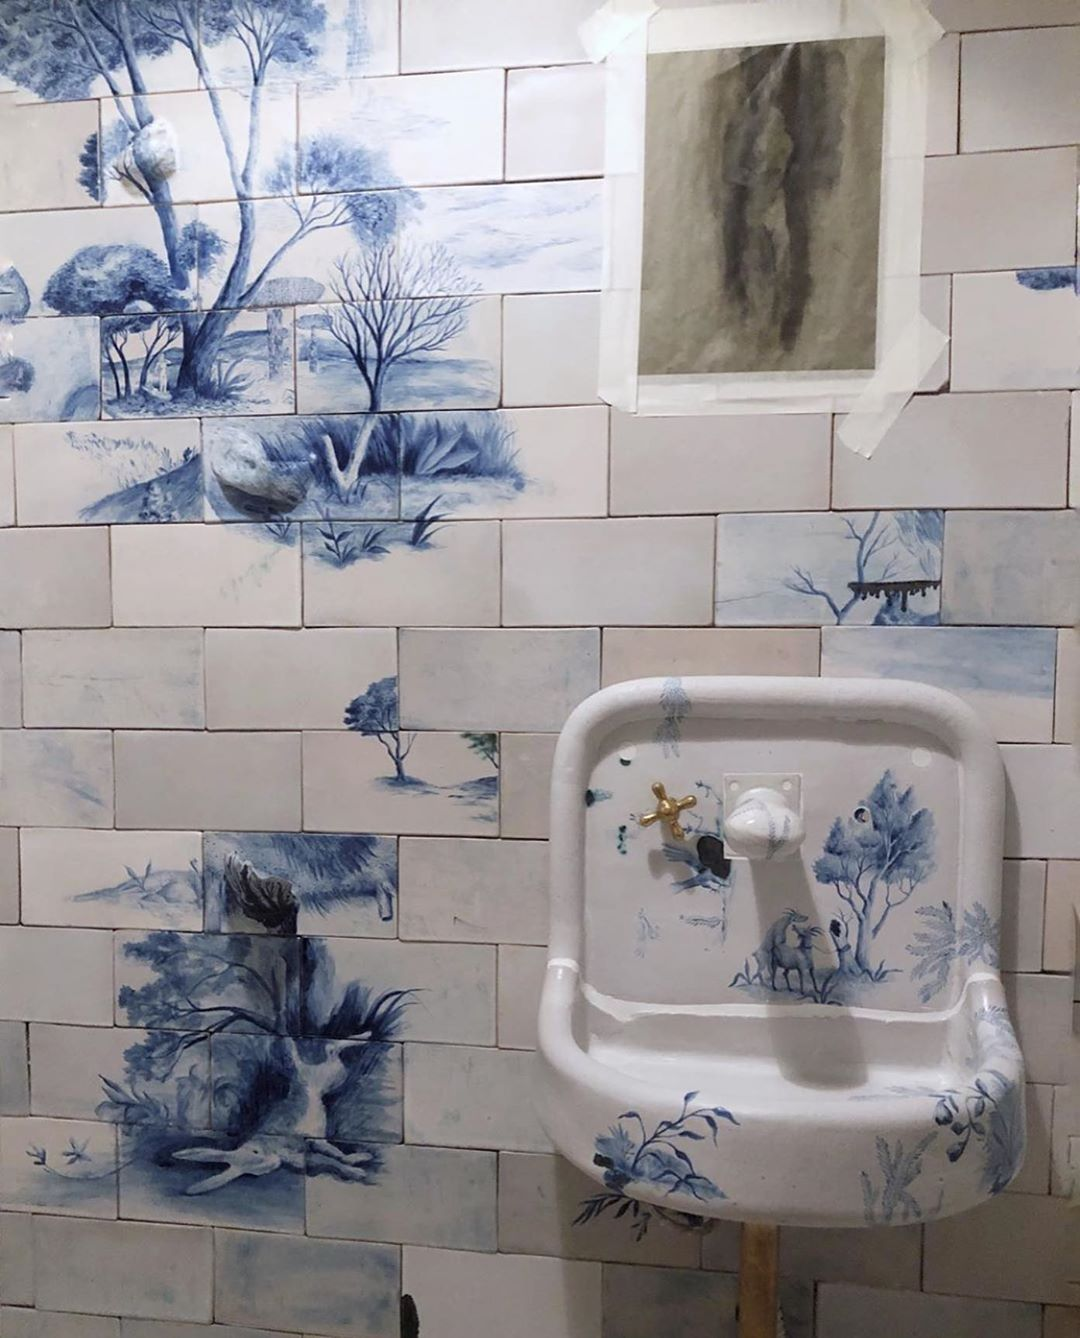 Hand Painted Tile Bathroom Of Dreams By